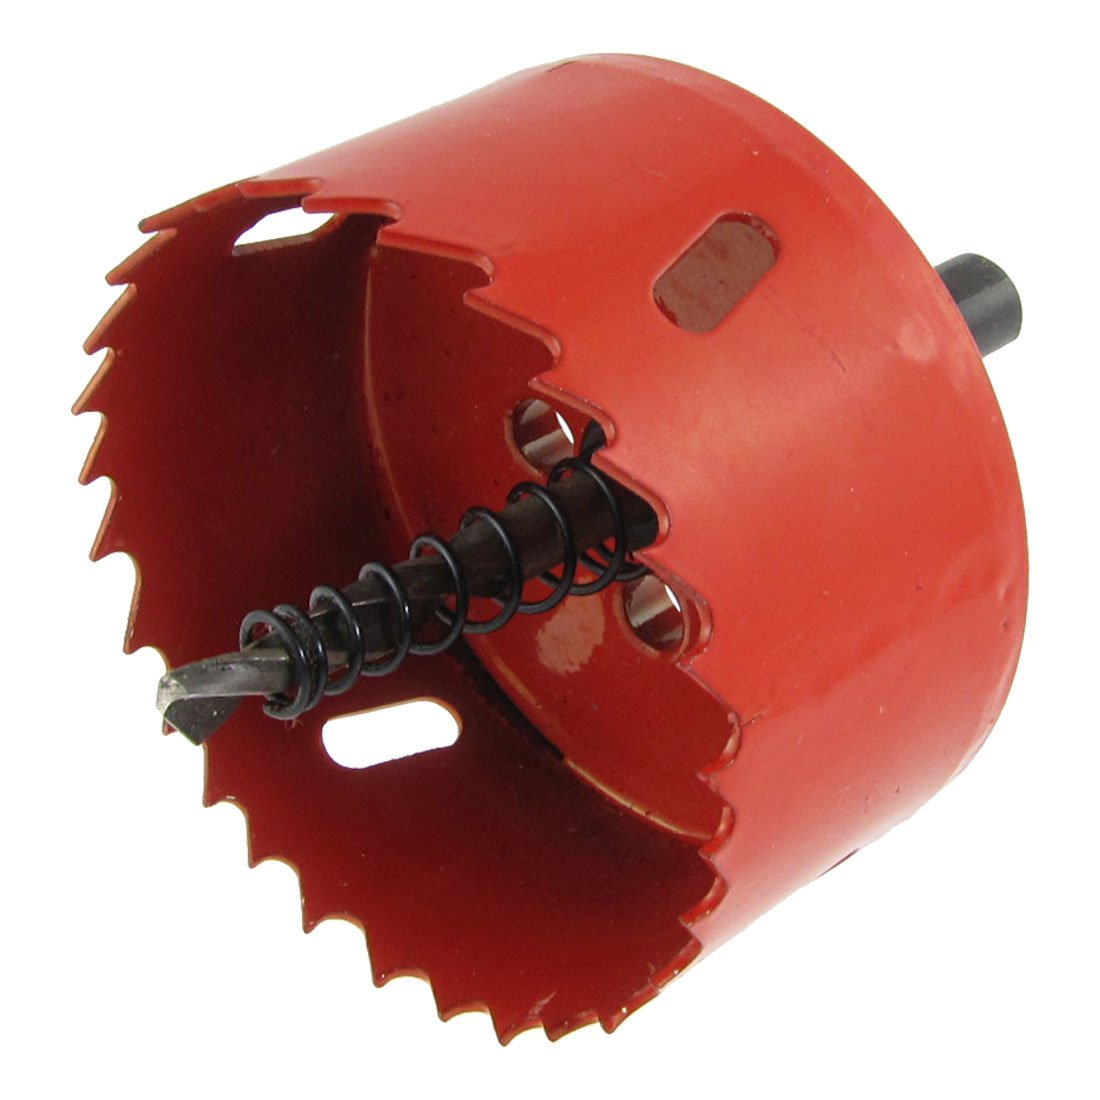 Drill Bit Holesaw Set Twist Drill Bits Hole Saw Cutter Power Tools 2 3/4-Inch Diameter